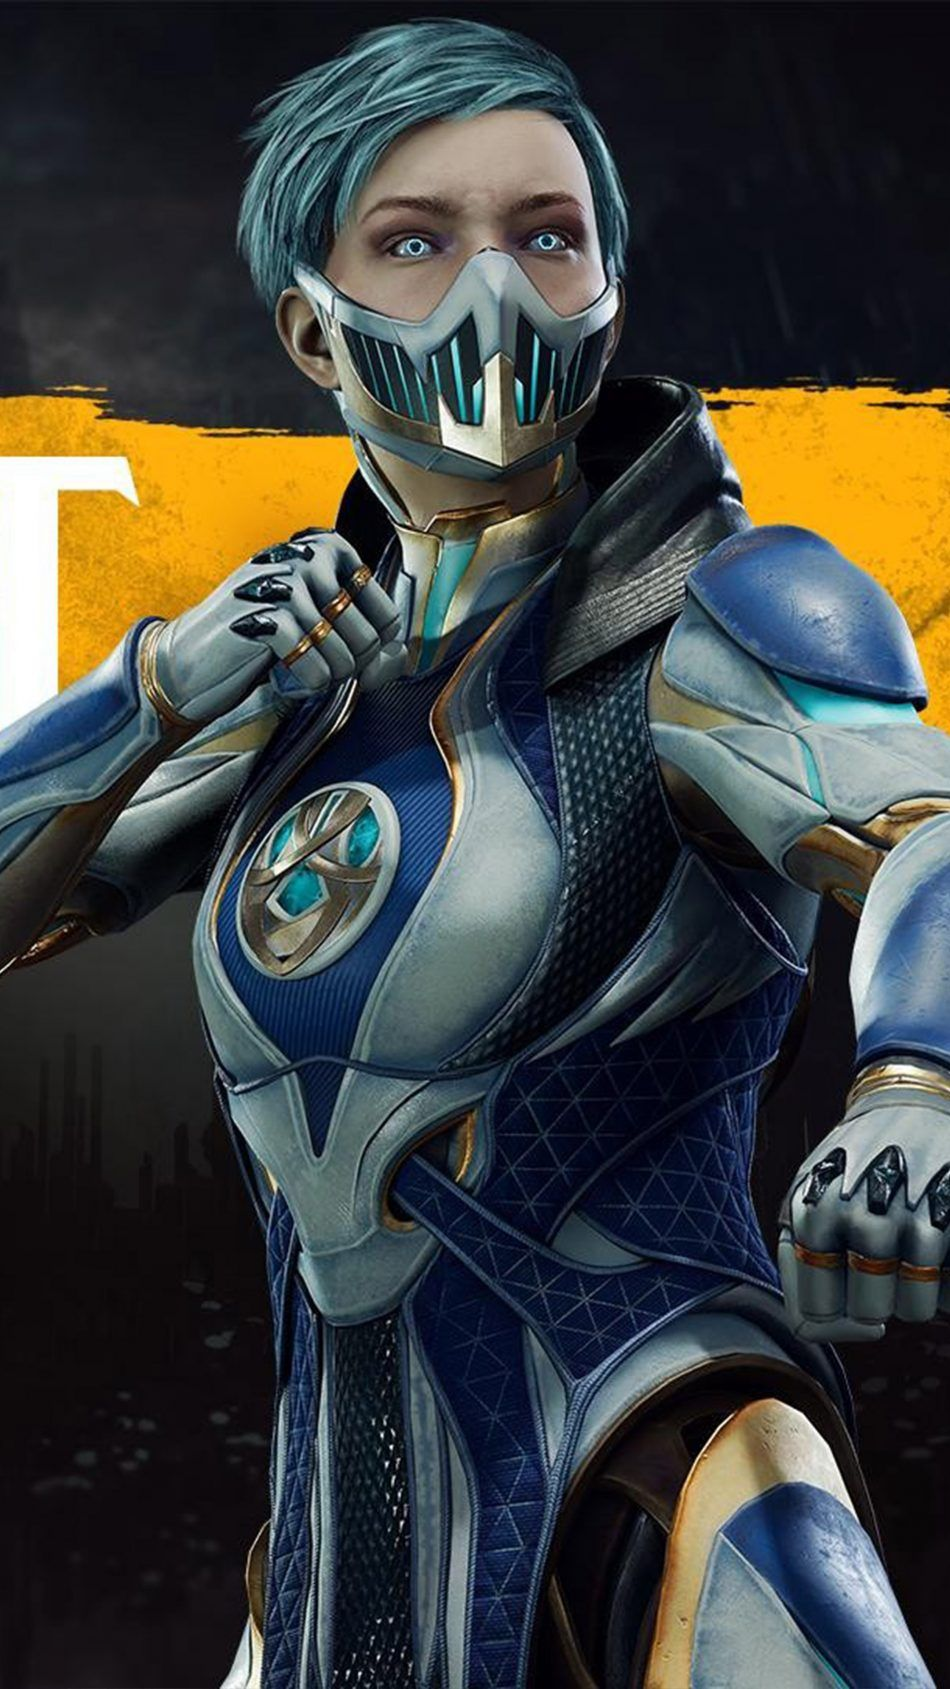 Download Frost Mortal Kombat 11 Free Pure 4k Ultra Hd Mobile